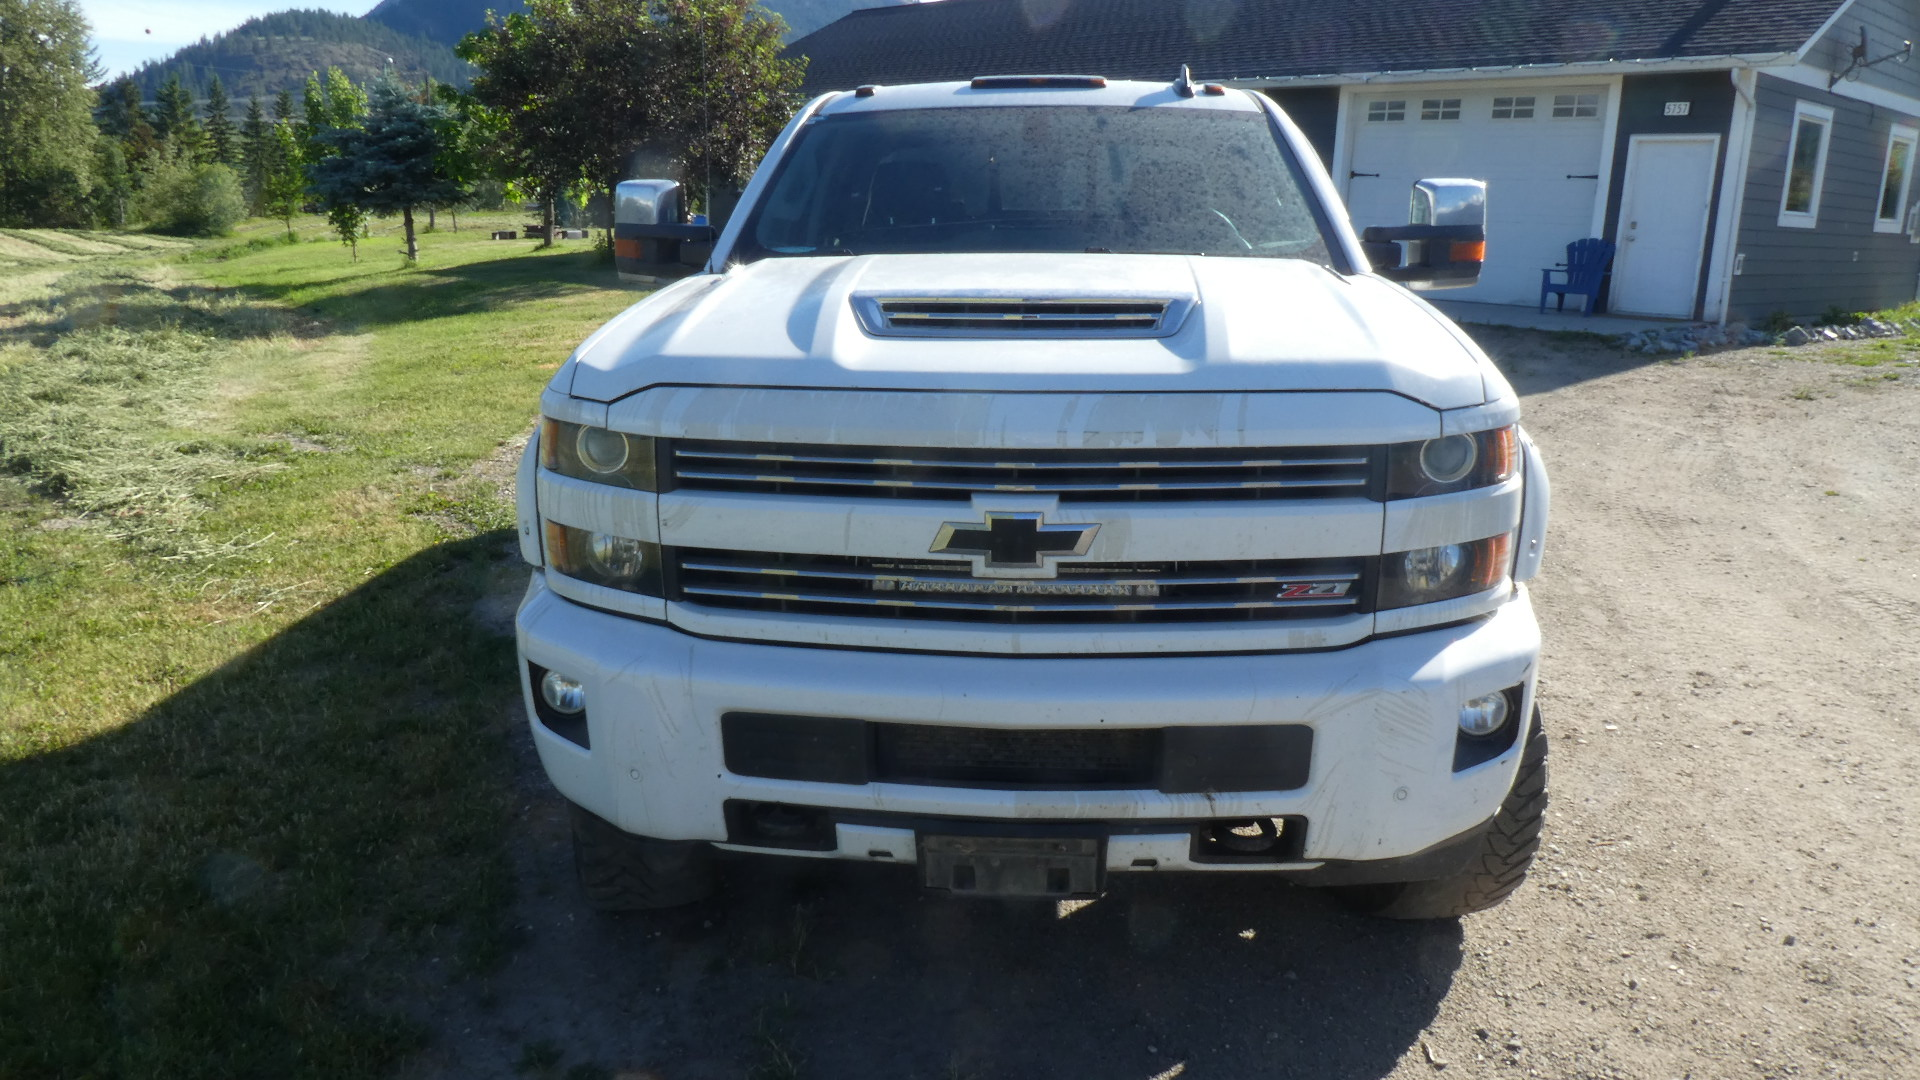 2018 Chevrolet 3500 Z71 #B-PG-0452 Re- Listed Located in Kelowna